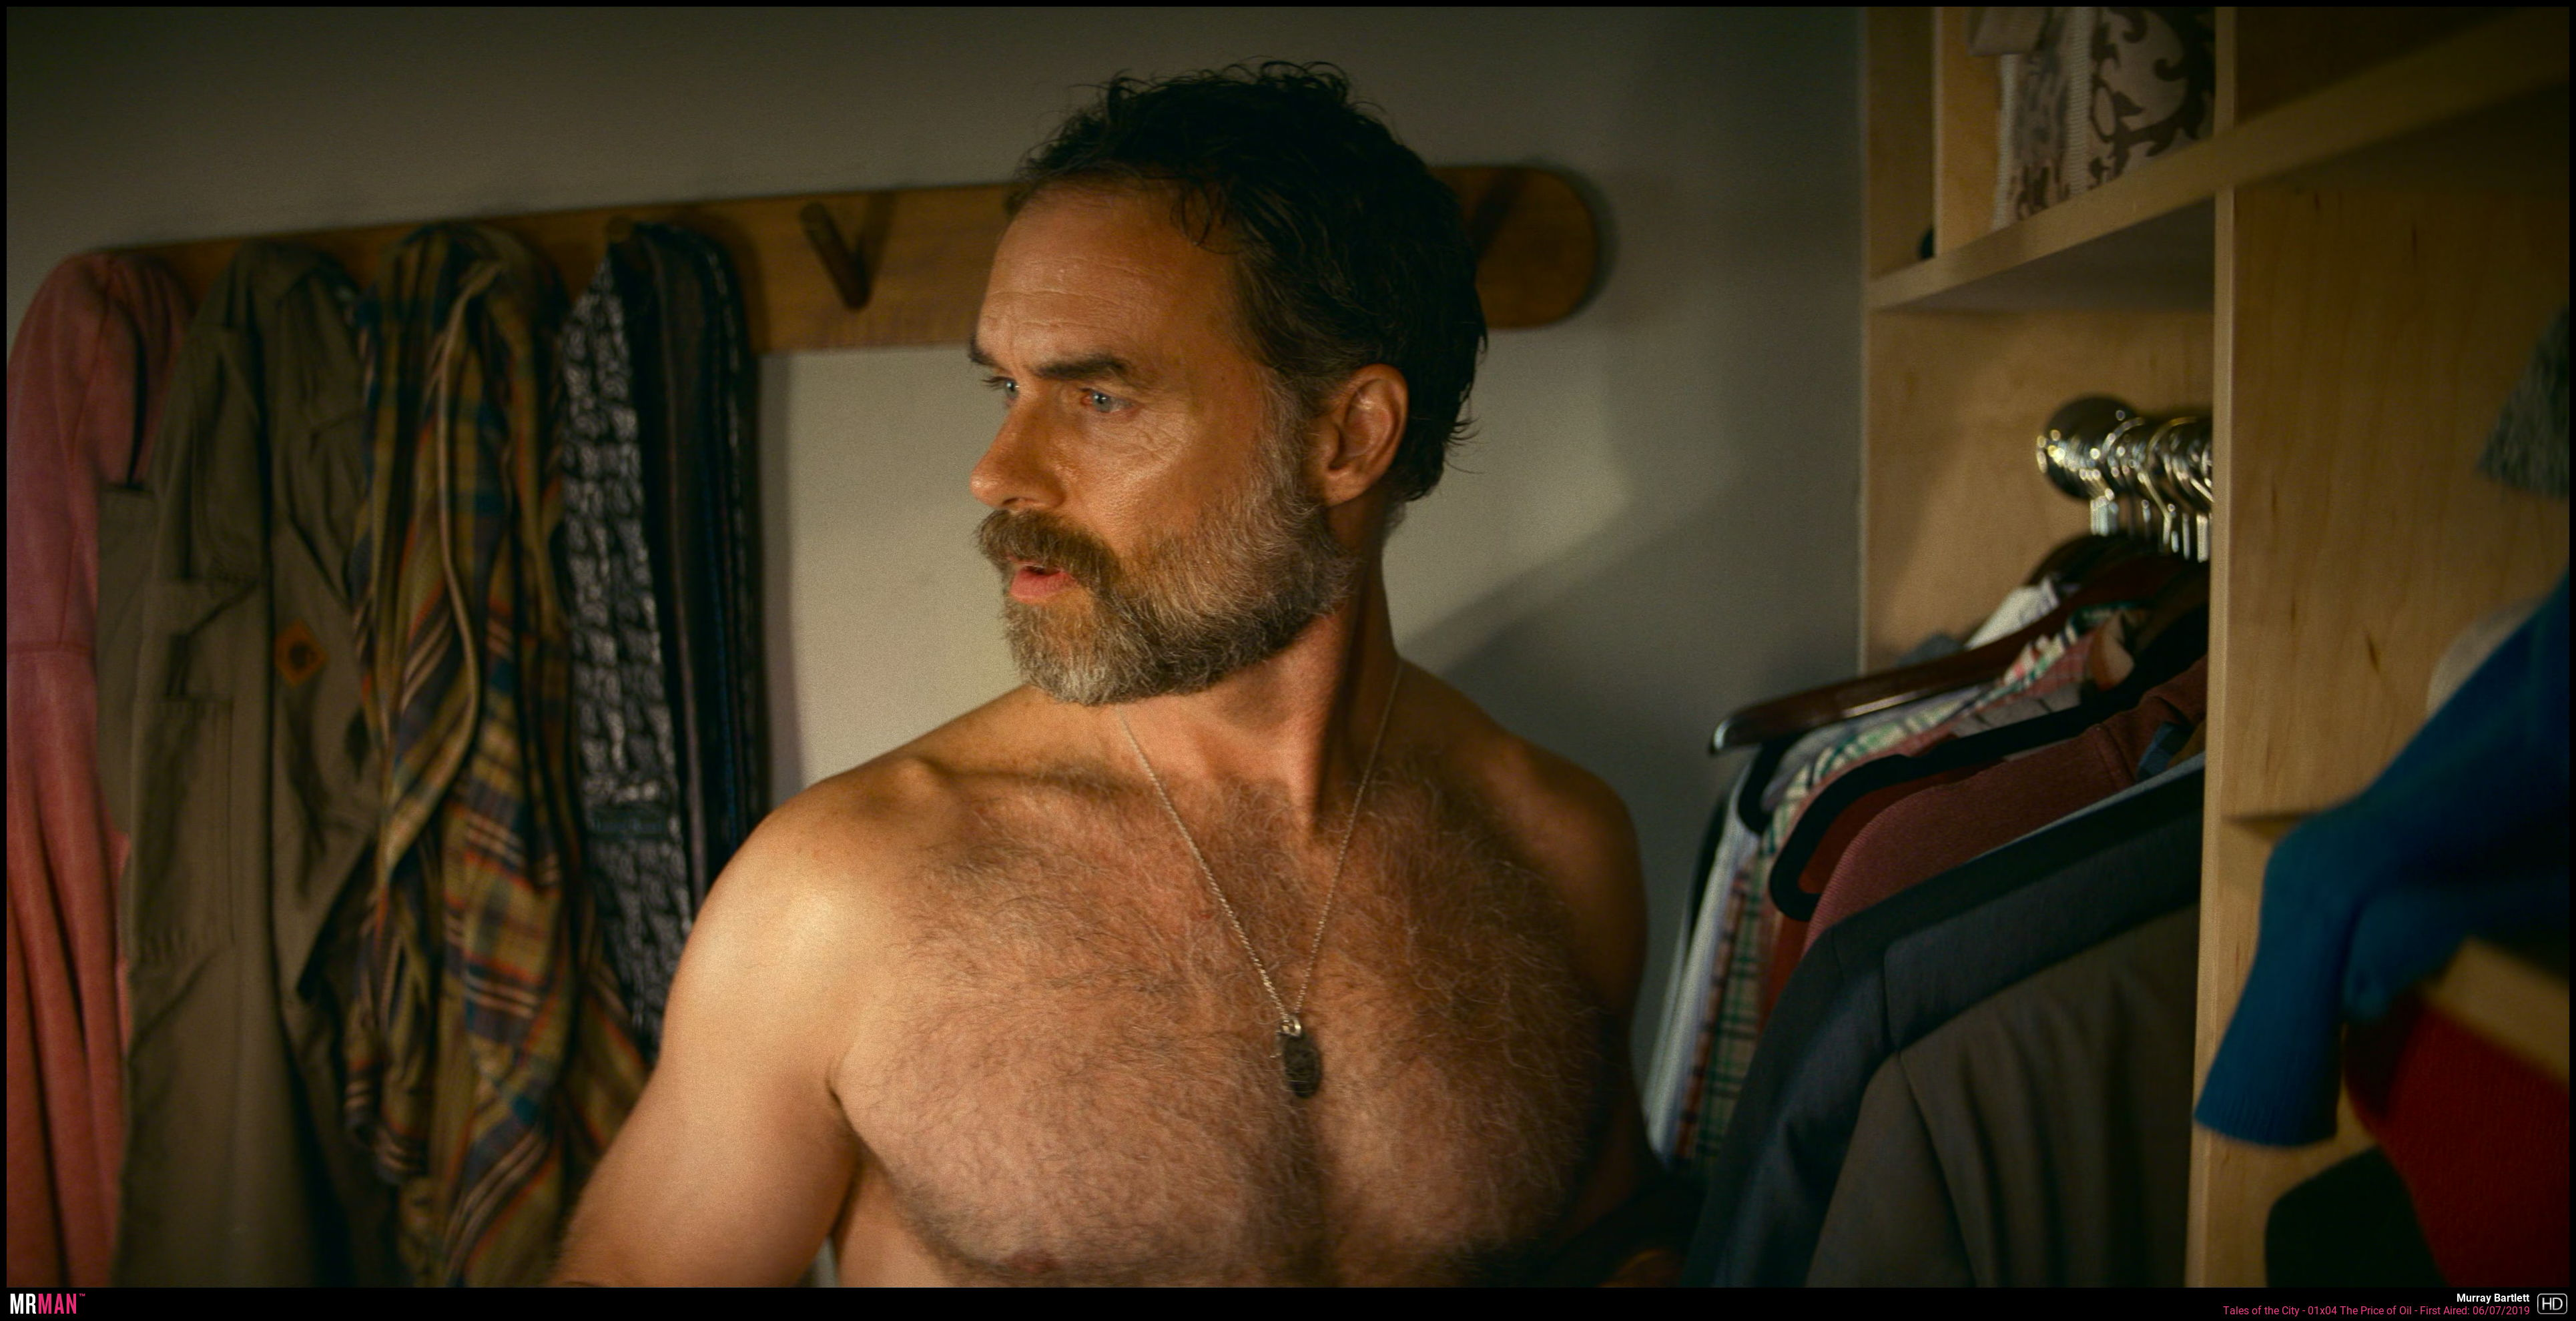 Anderson Cooper Nude Pics mrman's current crush: hot, naked daddy murray bartlett